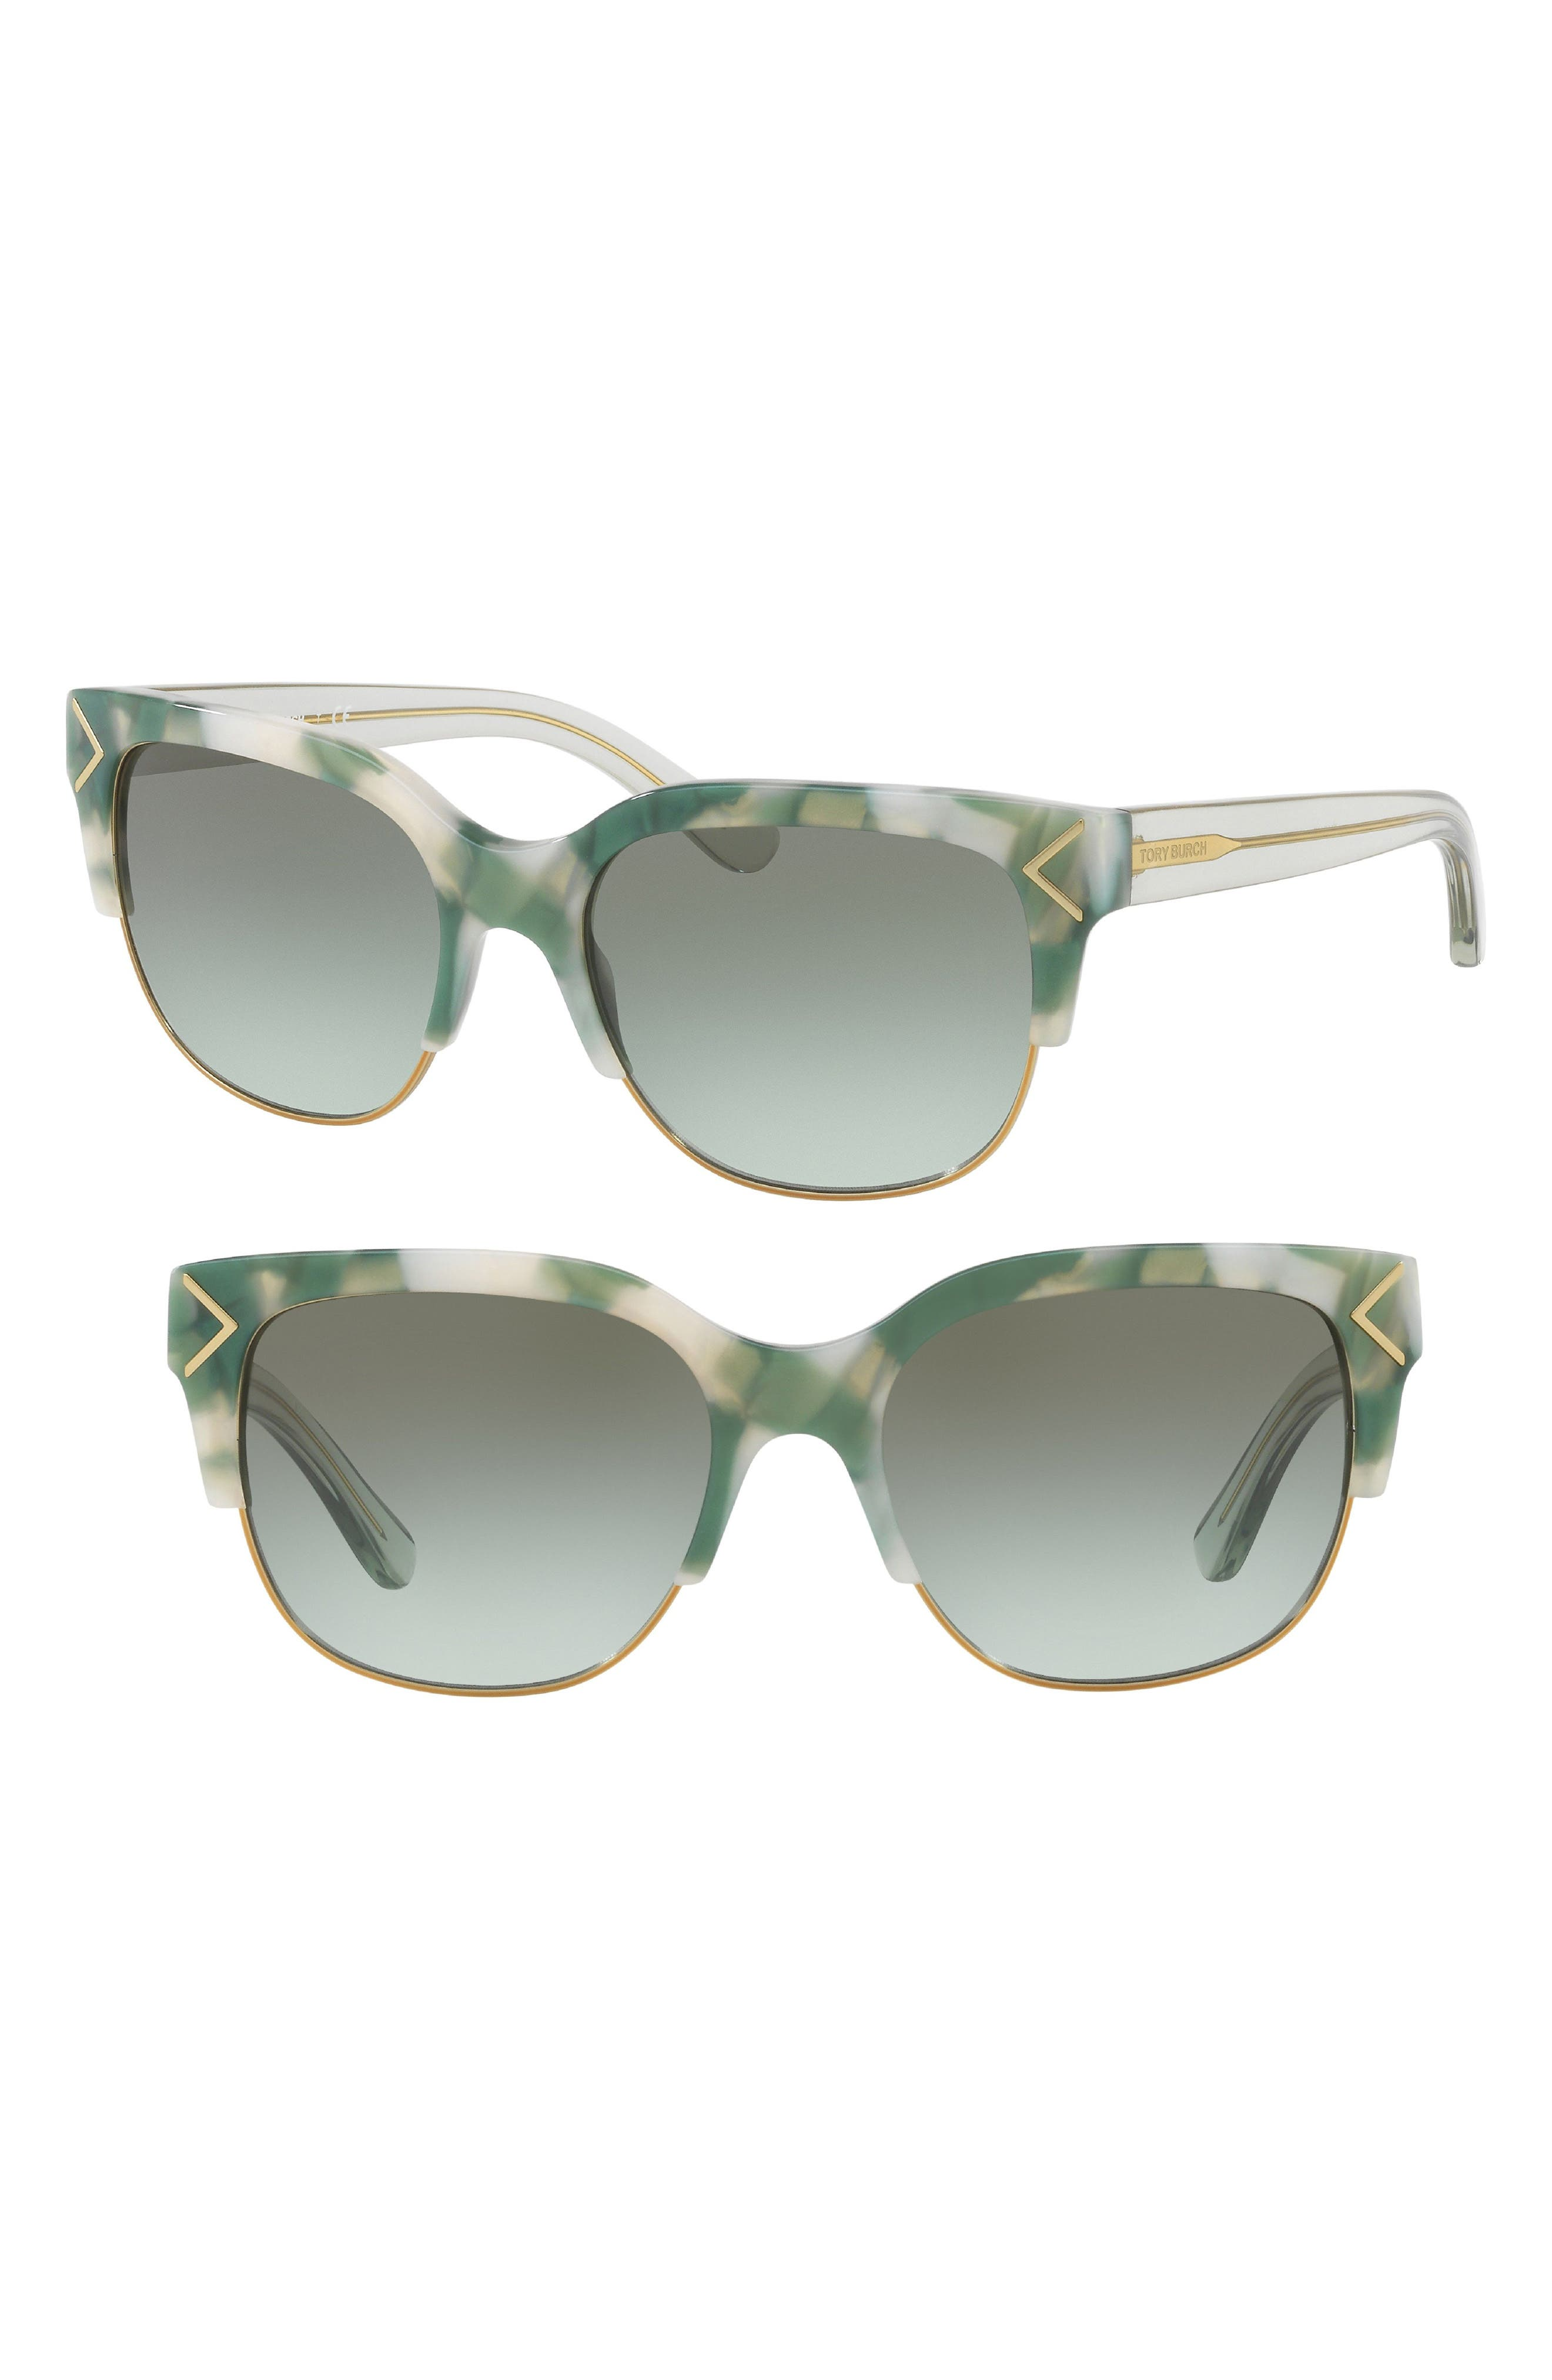 TORY BURCH 55mm Gradient Square Sunglasses, Main, color, 001